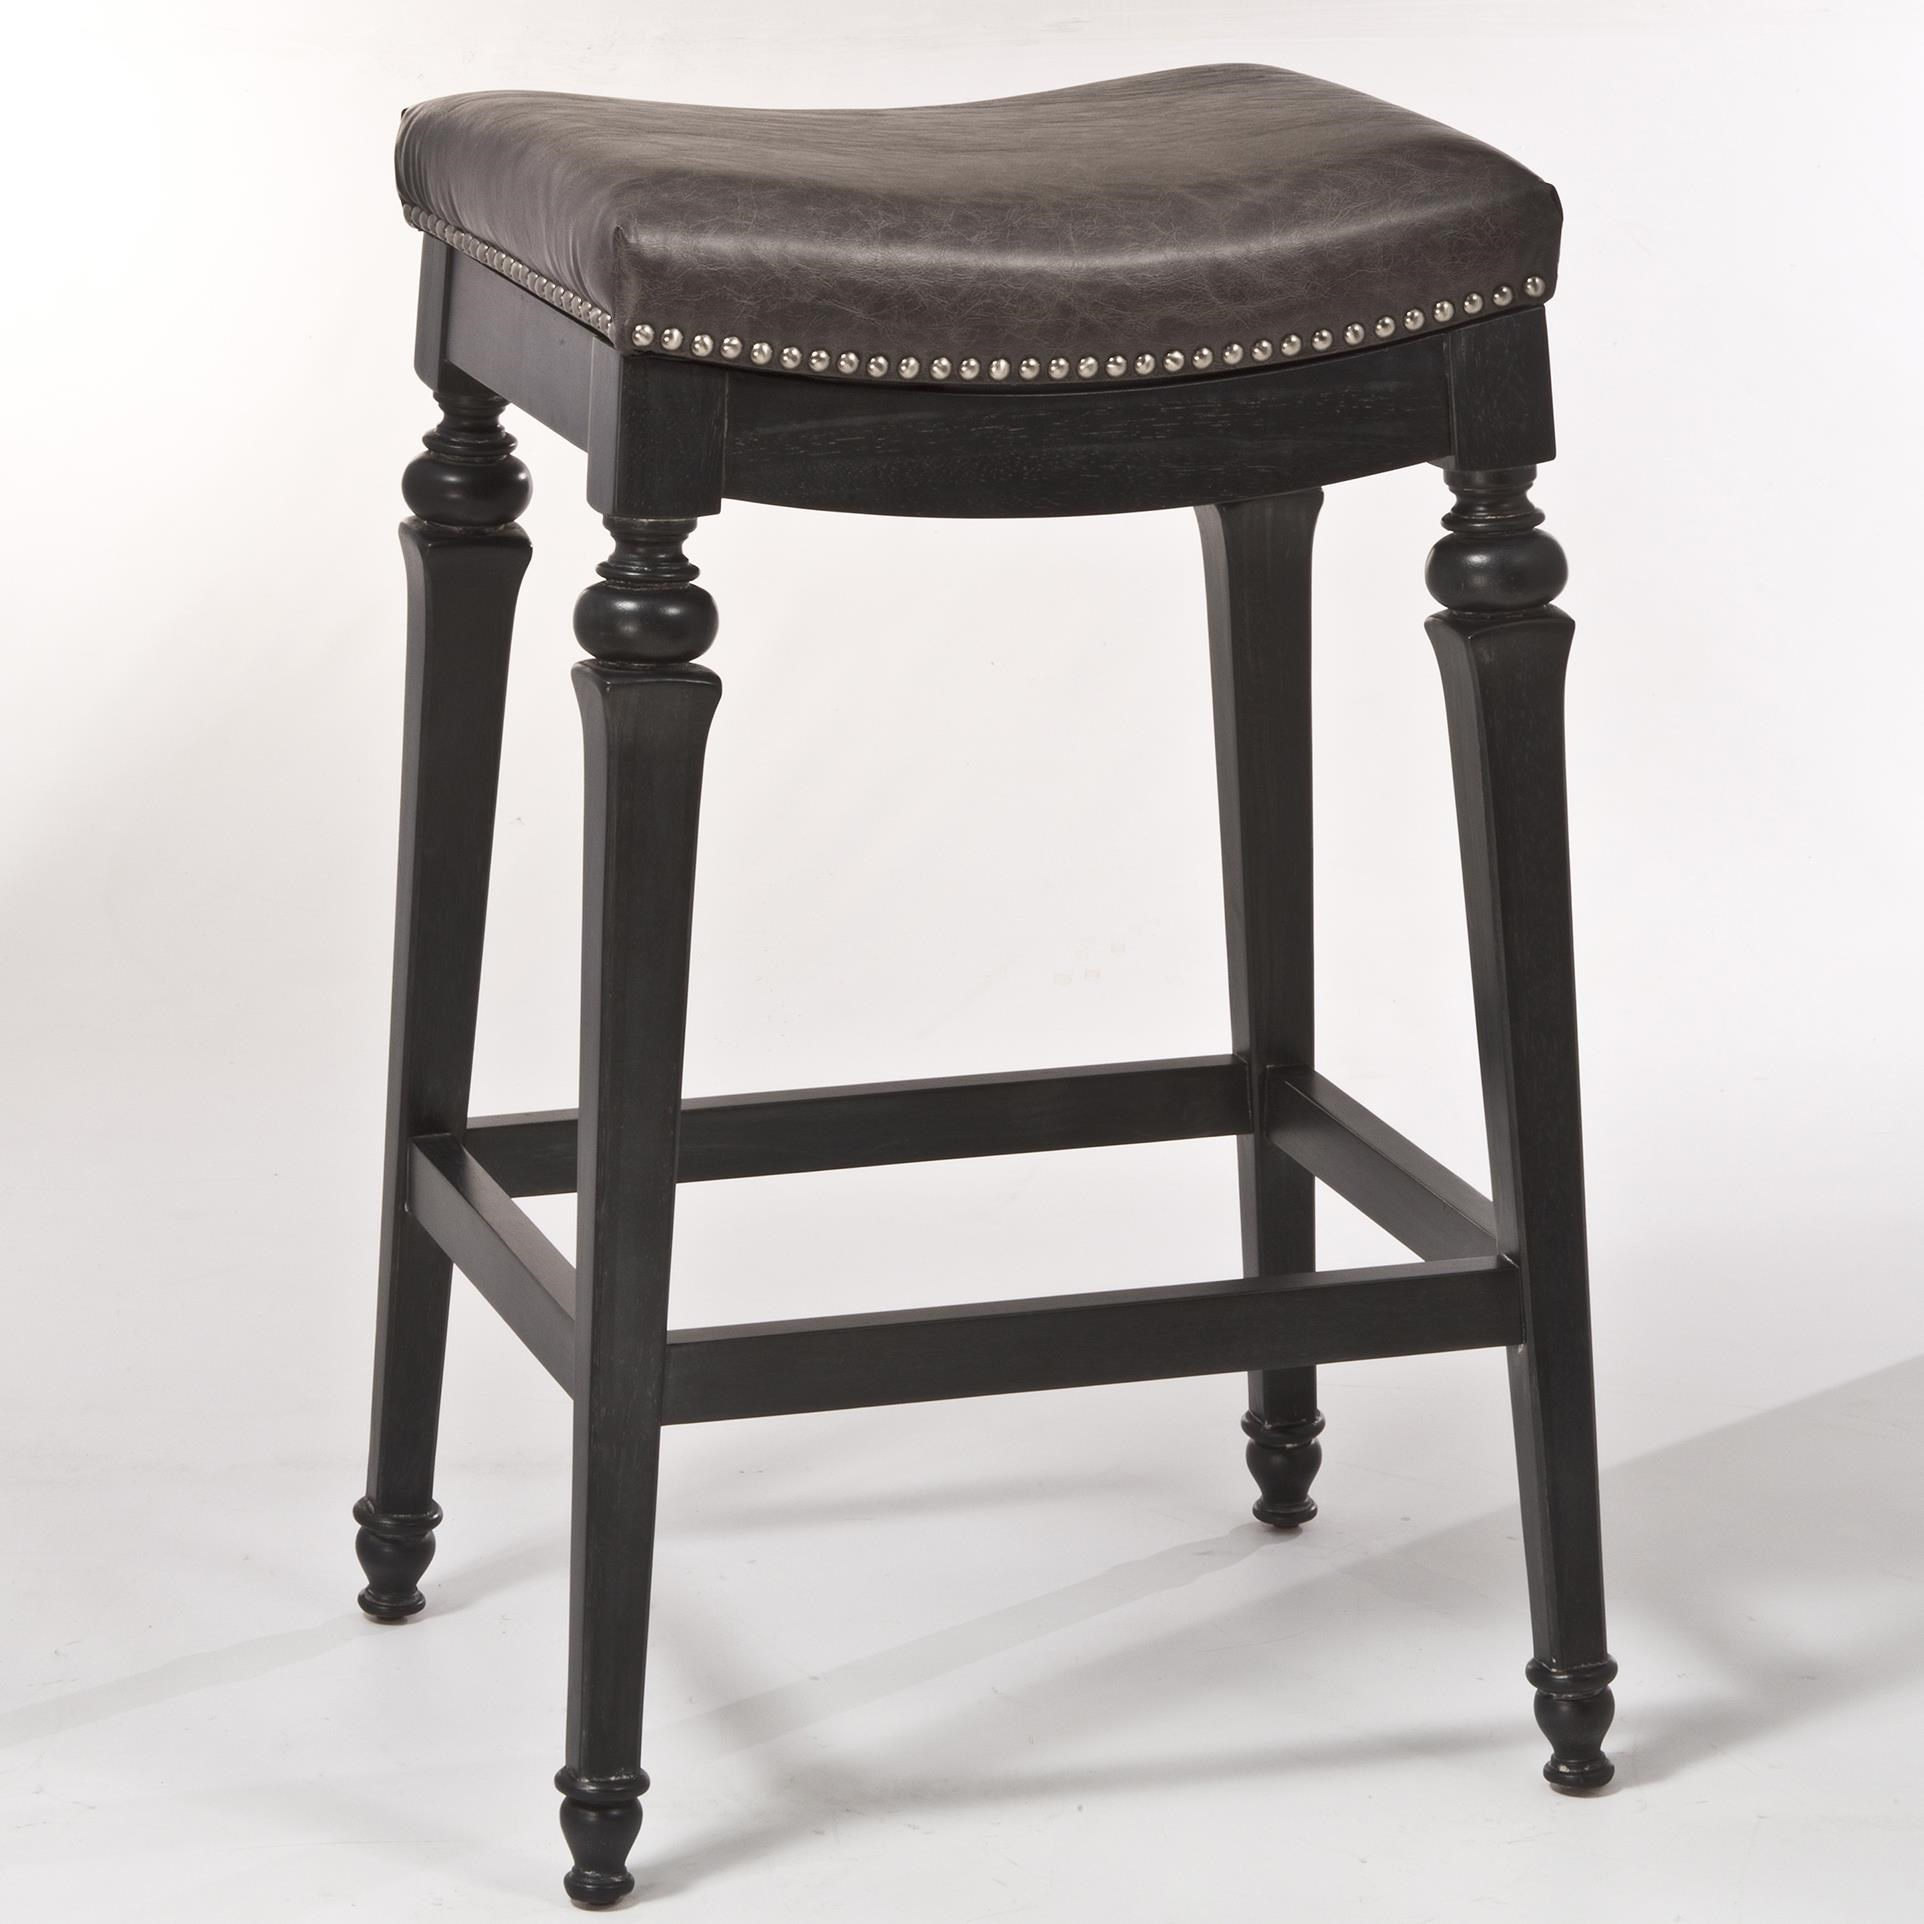 hillsdale bar stools. Hillsdale Backless Bar Stools Non-Swivel Counter Stool With Nailhead Trim S